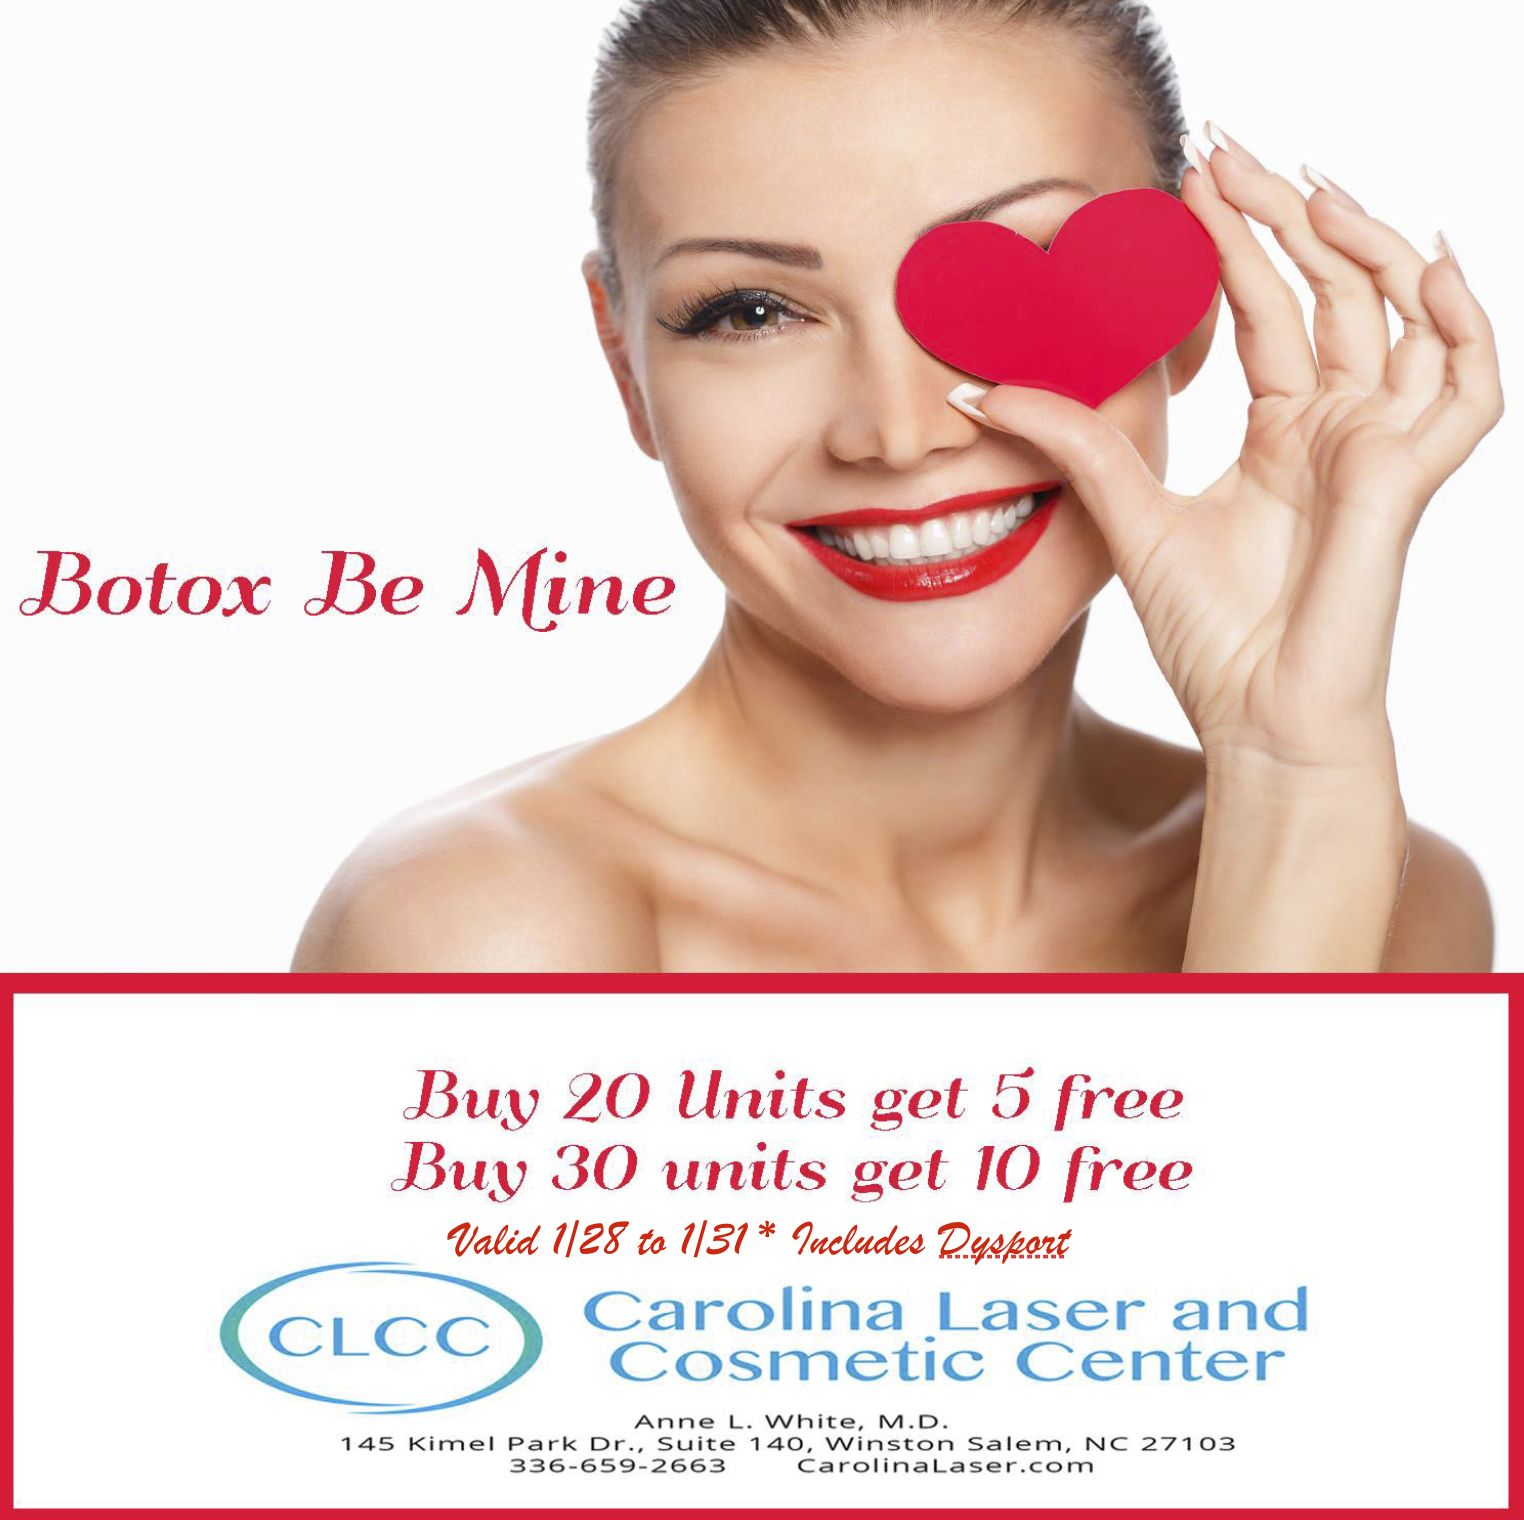 Special Botox Offer This Week Only! (2020) Cosmetics